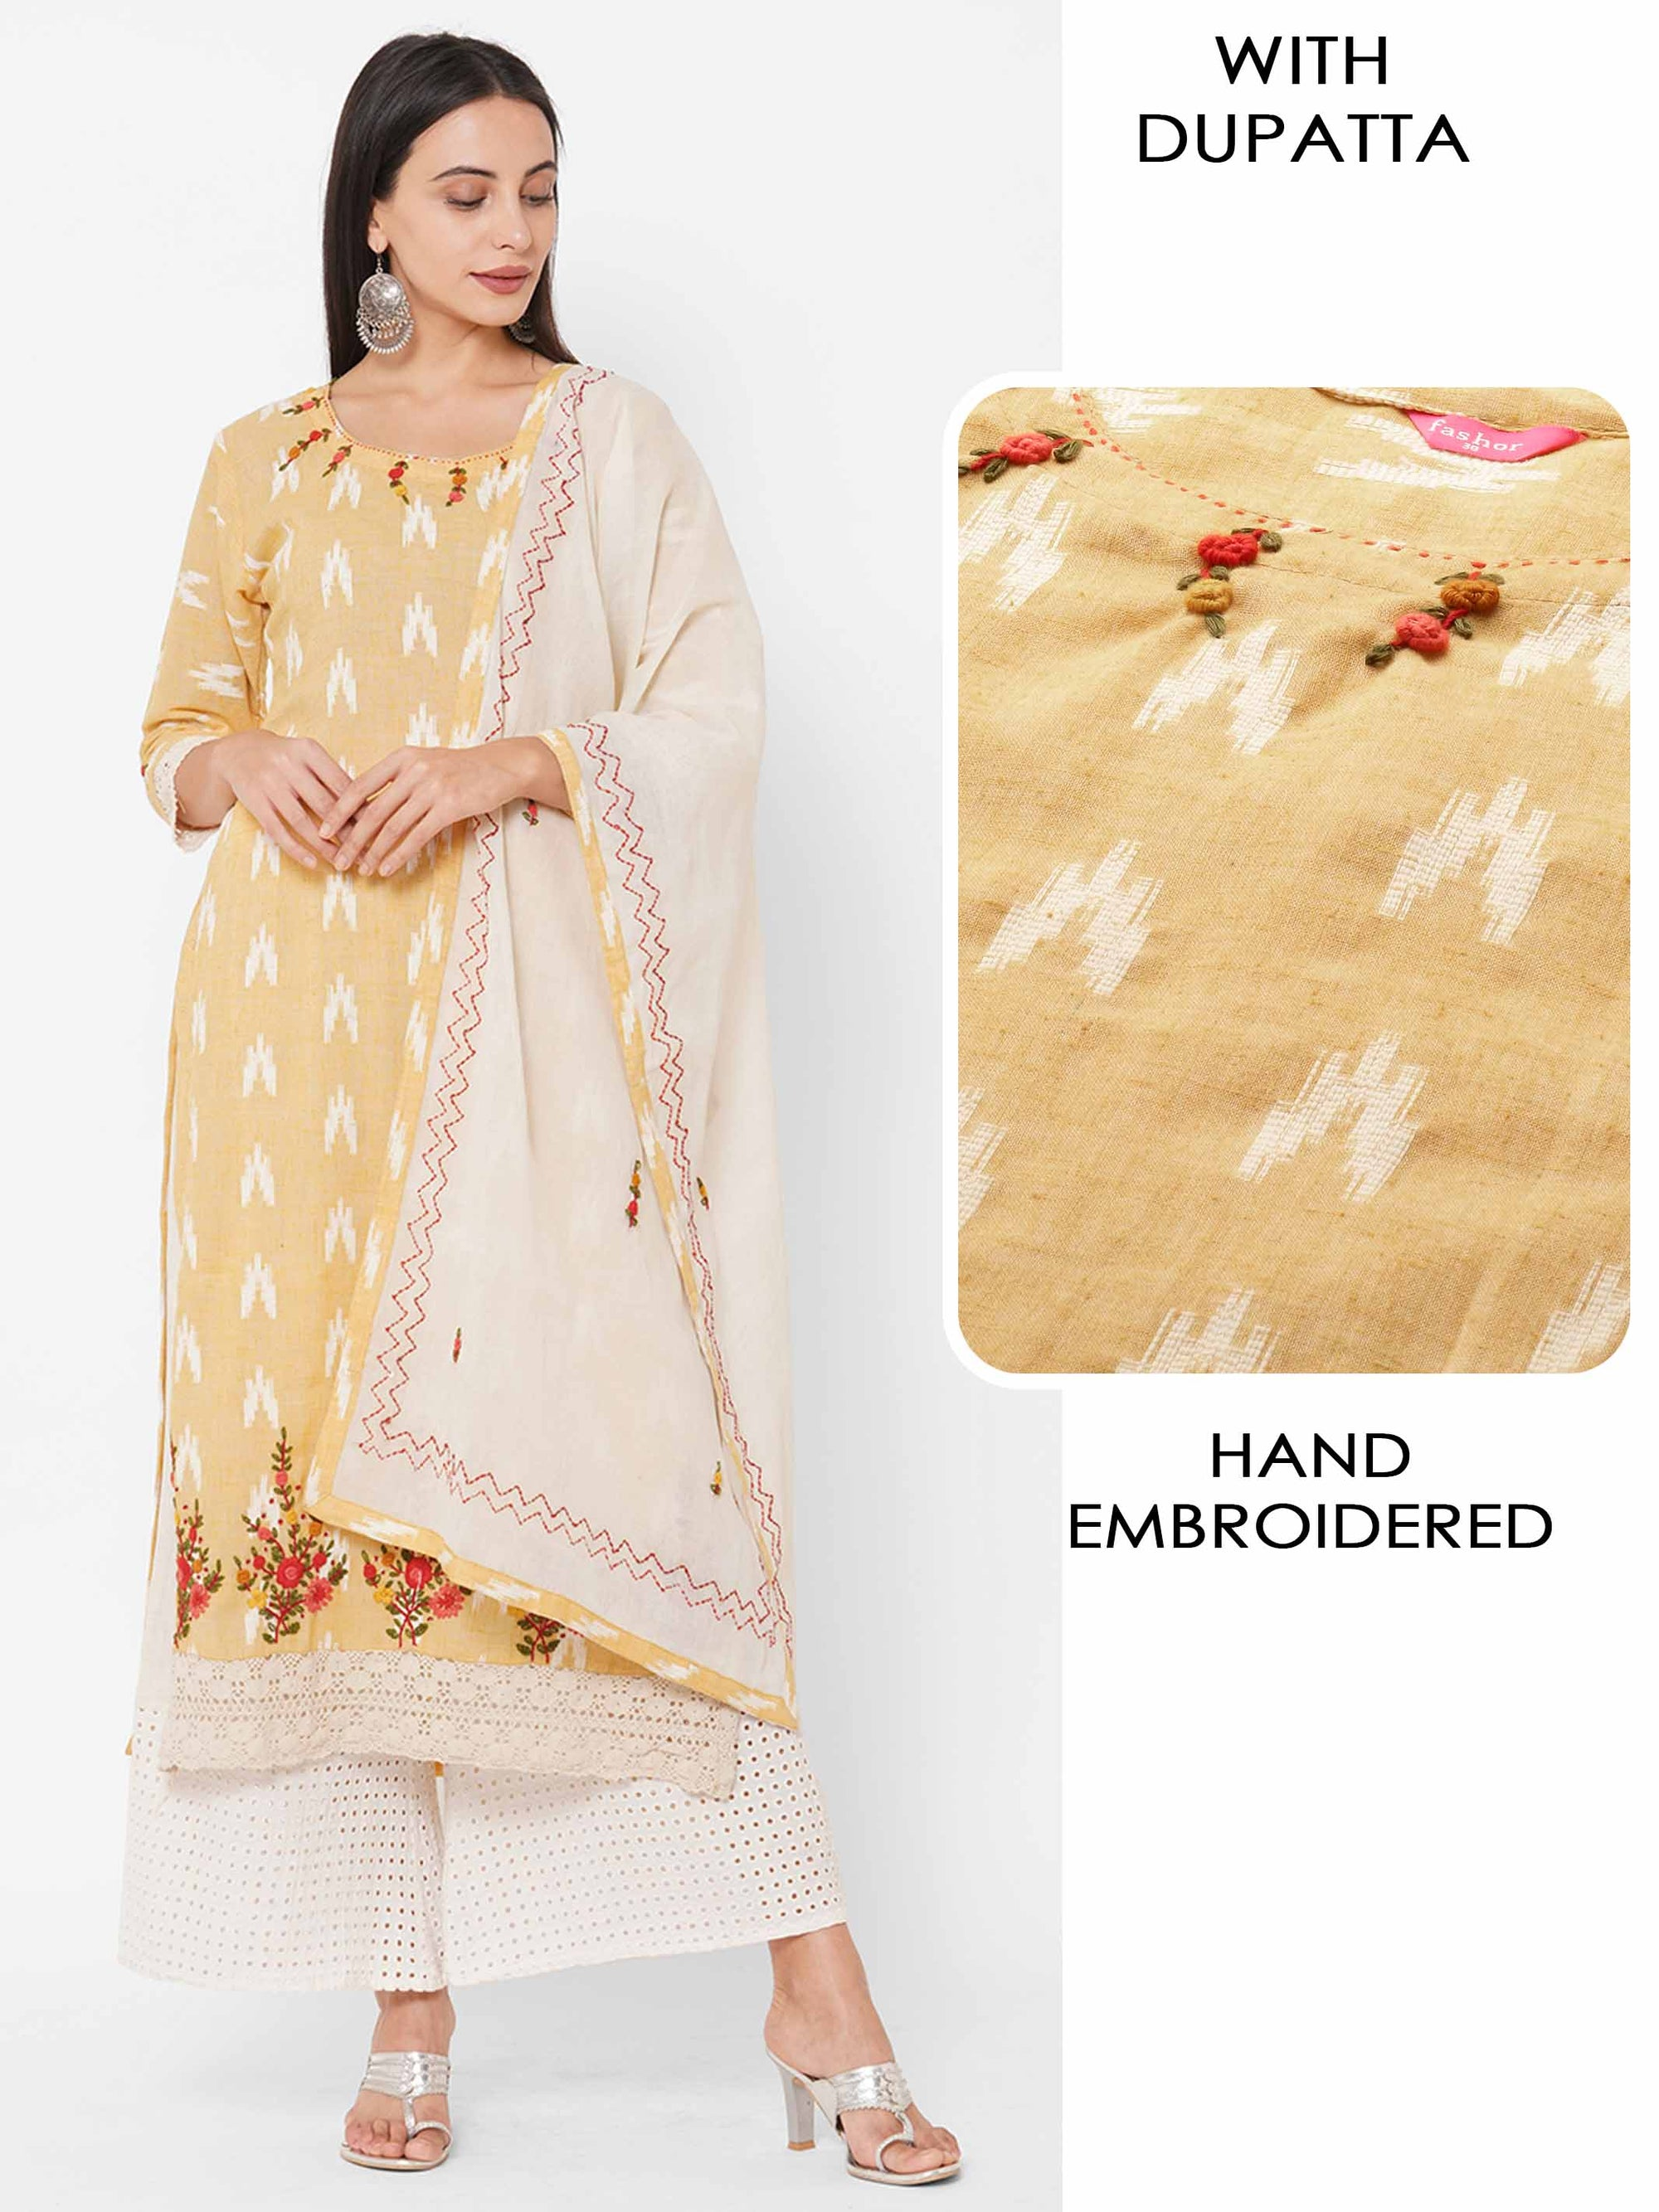 Ikat Woven & Floral Hand Embroidered Kurta with Hand Embroidered Dupatta - Winter Hazel